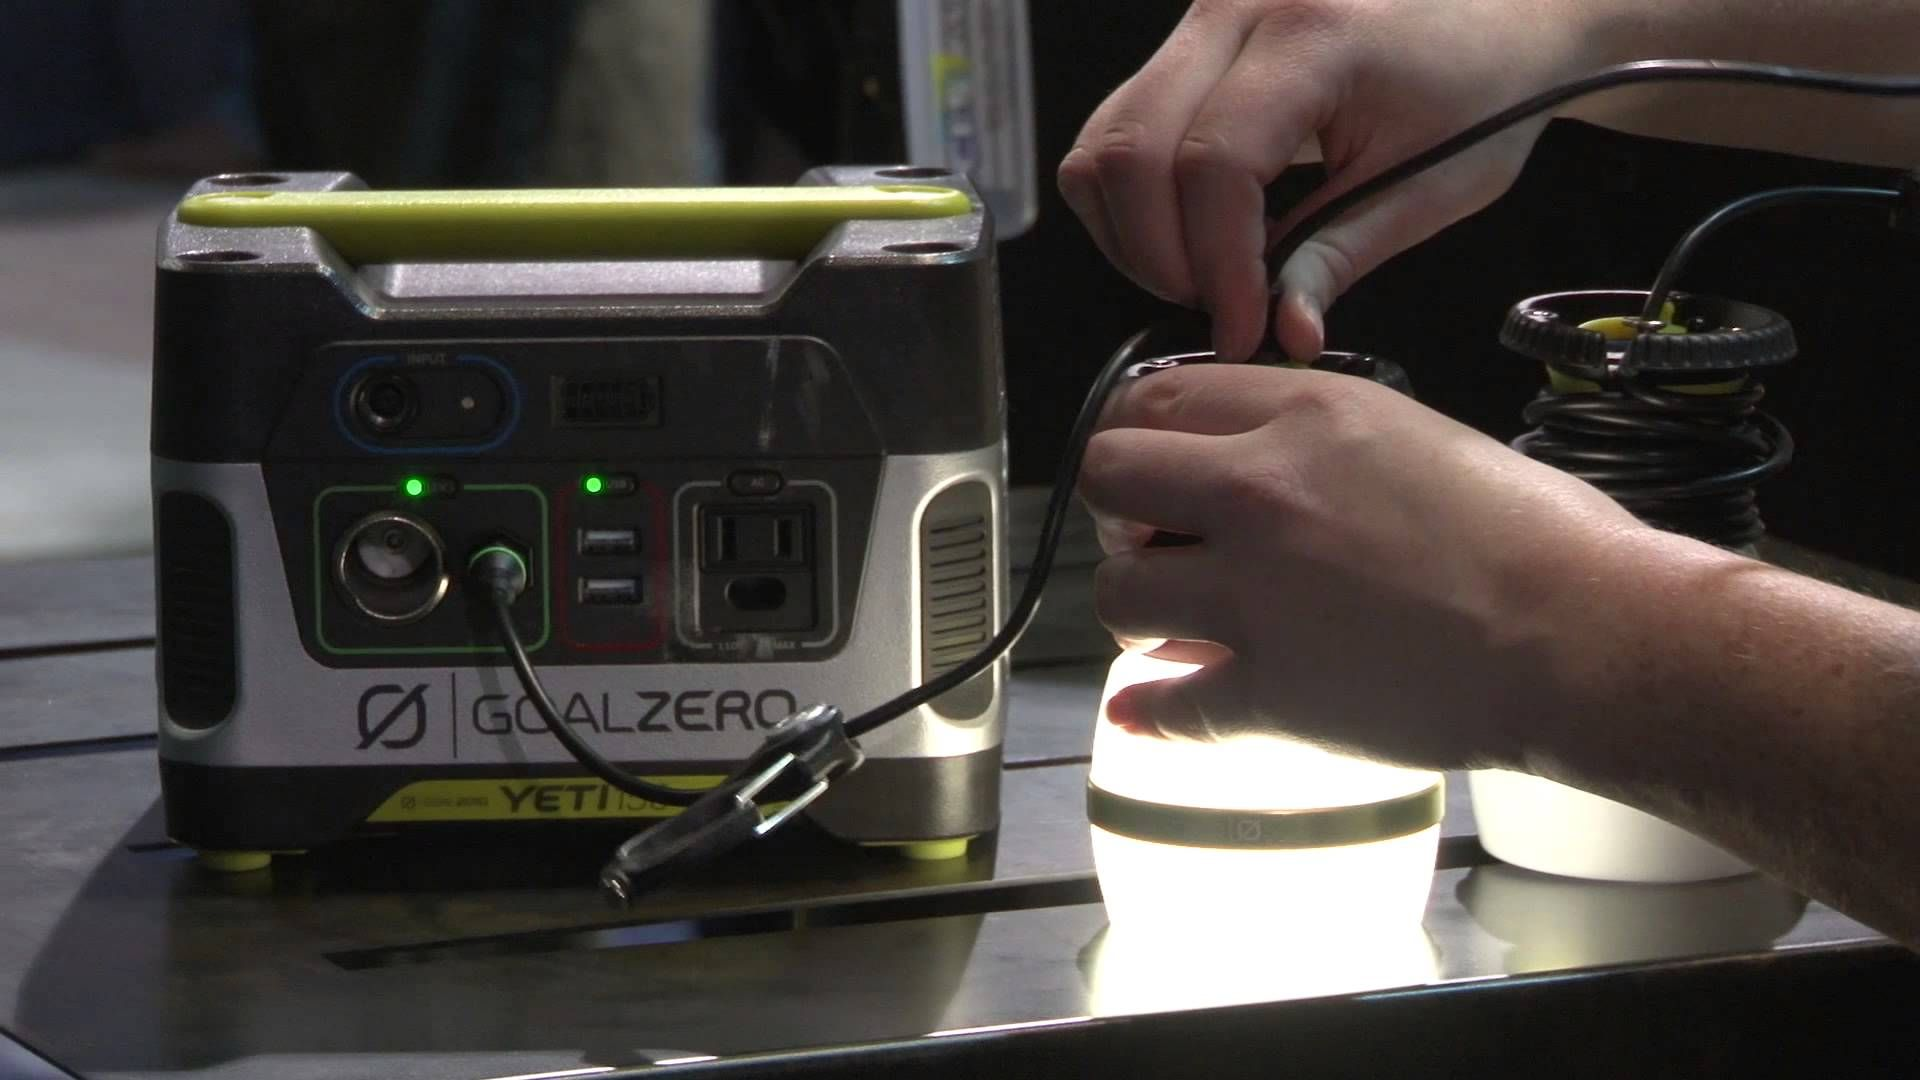 goal zero yeti 150 solar generator review check out our quick